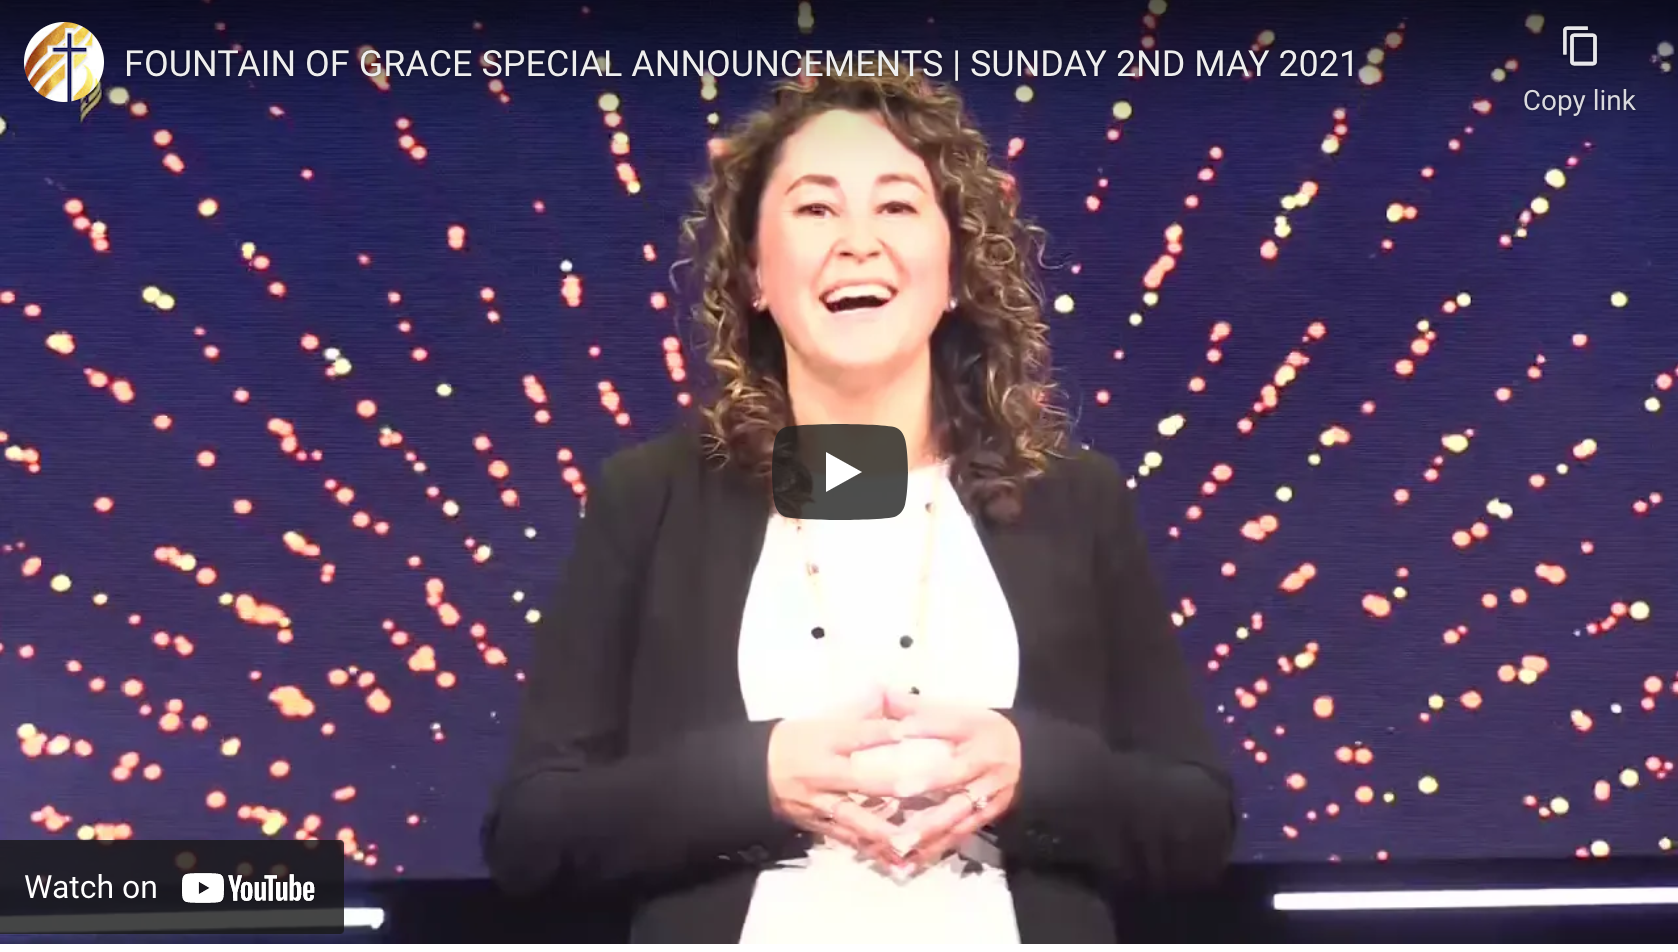 FOUNTAIN OF GRACE SPECIAL ANNOUNCEMENTS   SUNDAY 2ND MAY 2021